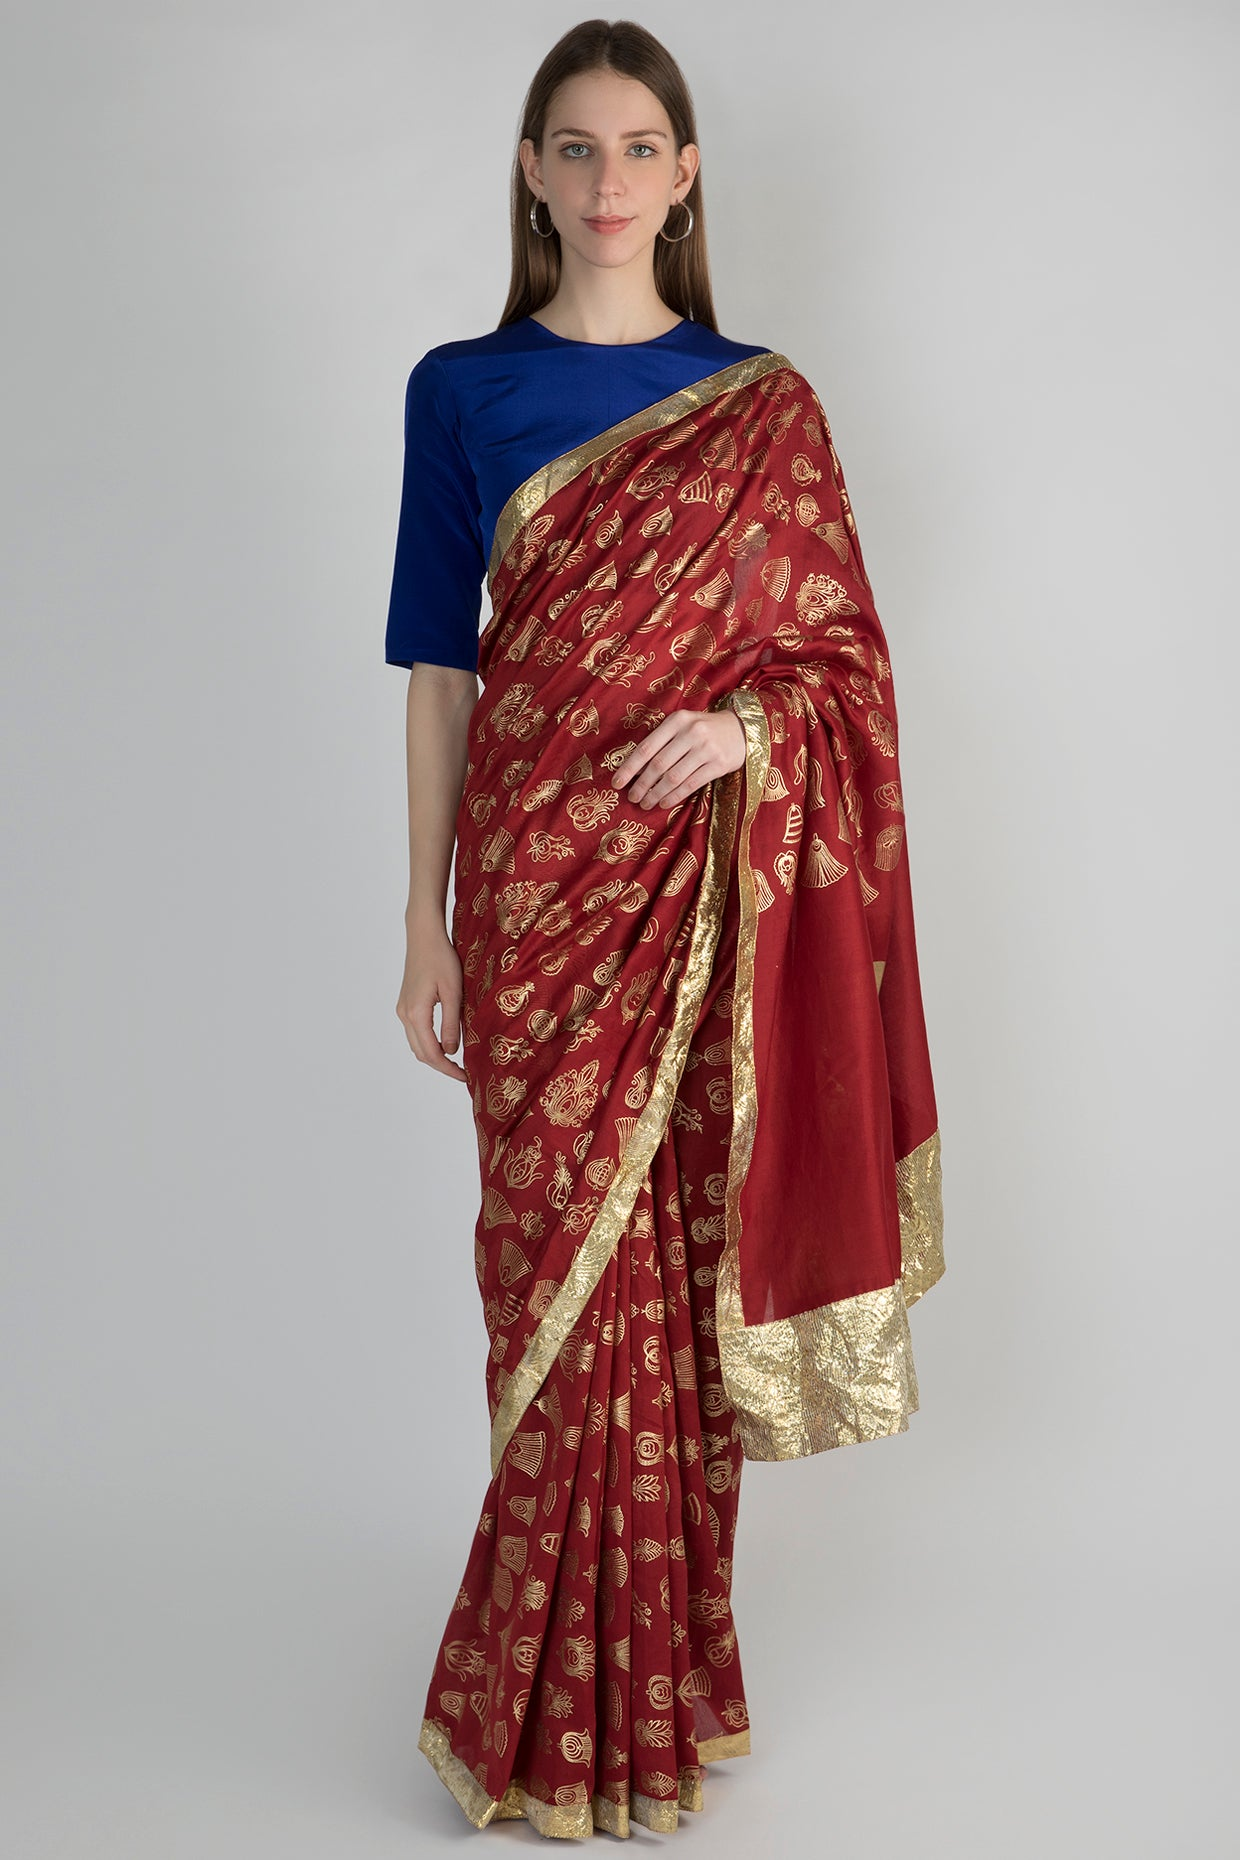 MAROON GULSHAN PRINT SARI WITH GOTA BORDER & BLUE BLOUSE PIECE - The Grand Trunk